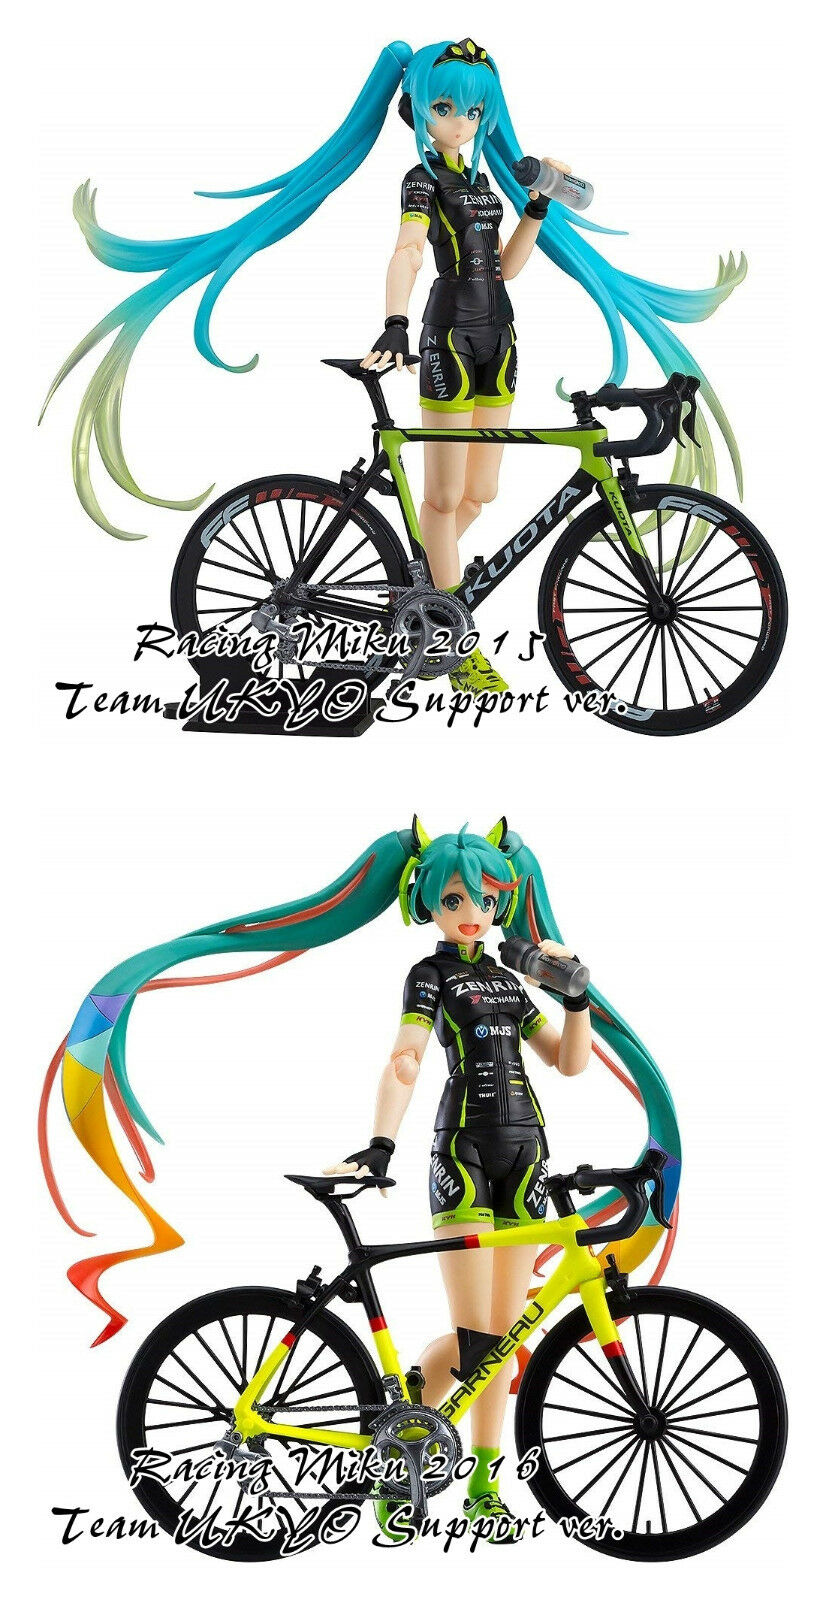 Figma Hatsune Miku Gt Project  racig MIKU teamukyo Support ver.  2015 2016 Ver.